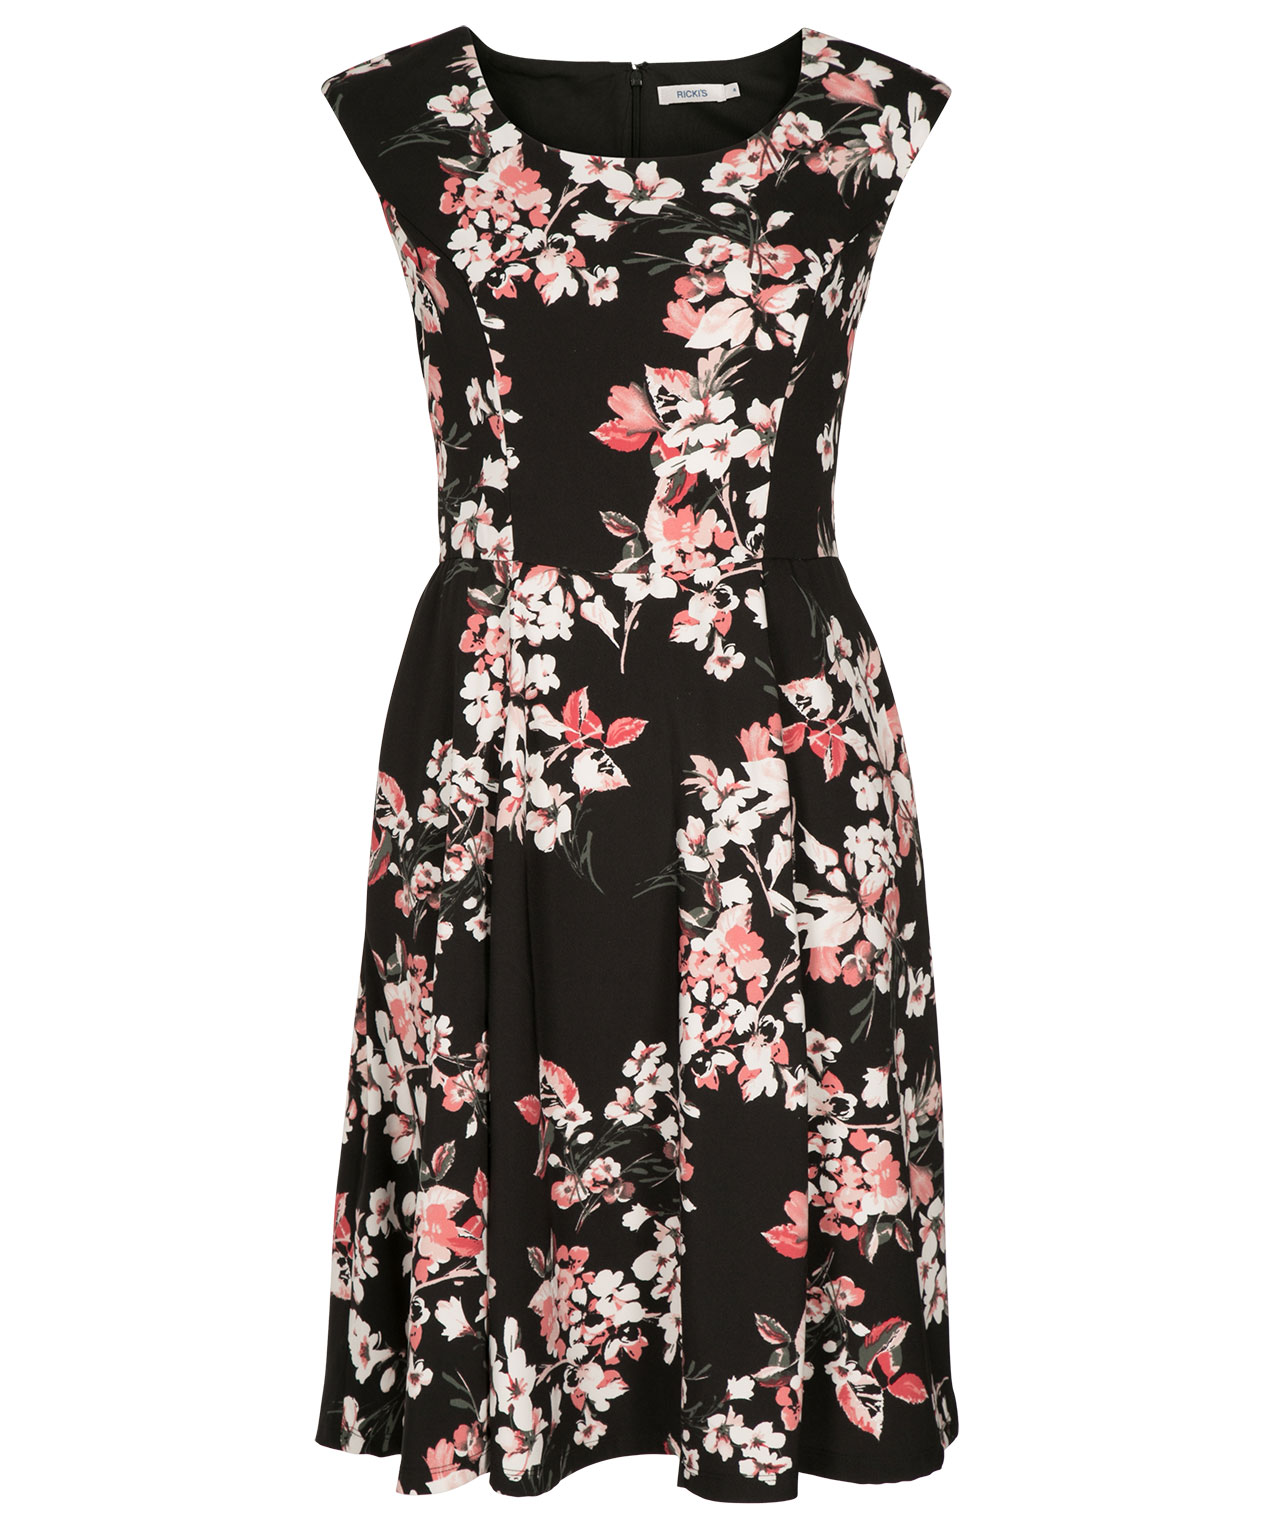 7f9f57be8ab9 Oriental Floral Print Dress, Black/White/Pink, hi-res